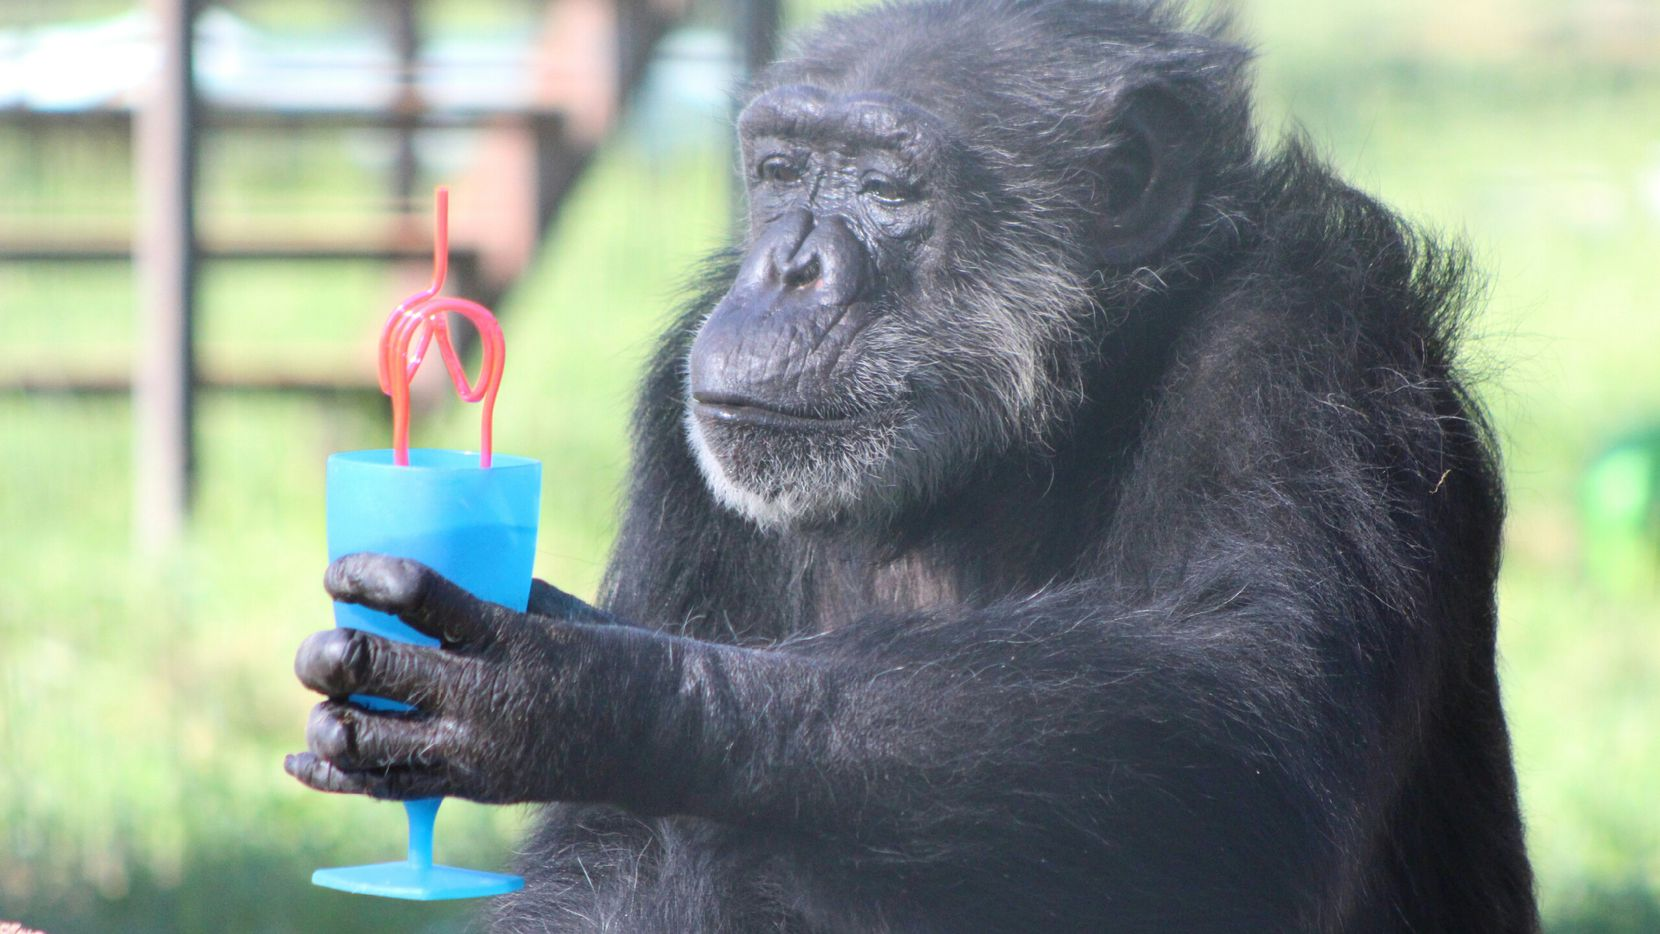 Lulu Belle, a chimpanzee at Cleveland Amory Black Beauty Ranch in Murchison, Texas, drinks sugar-free Kool-Aid from a cup. It's her favorite treat.